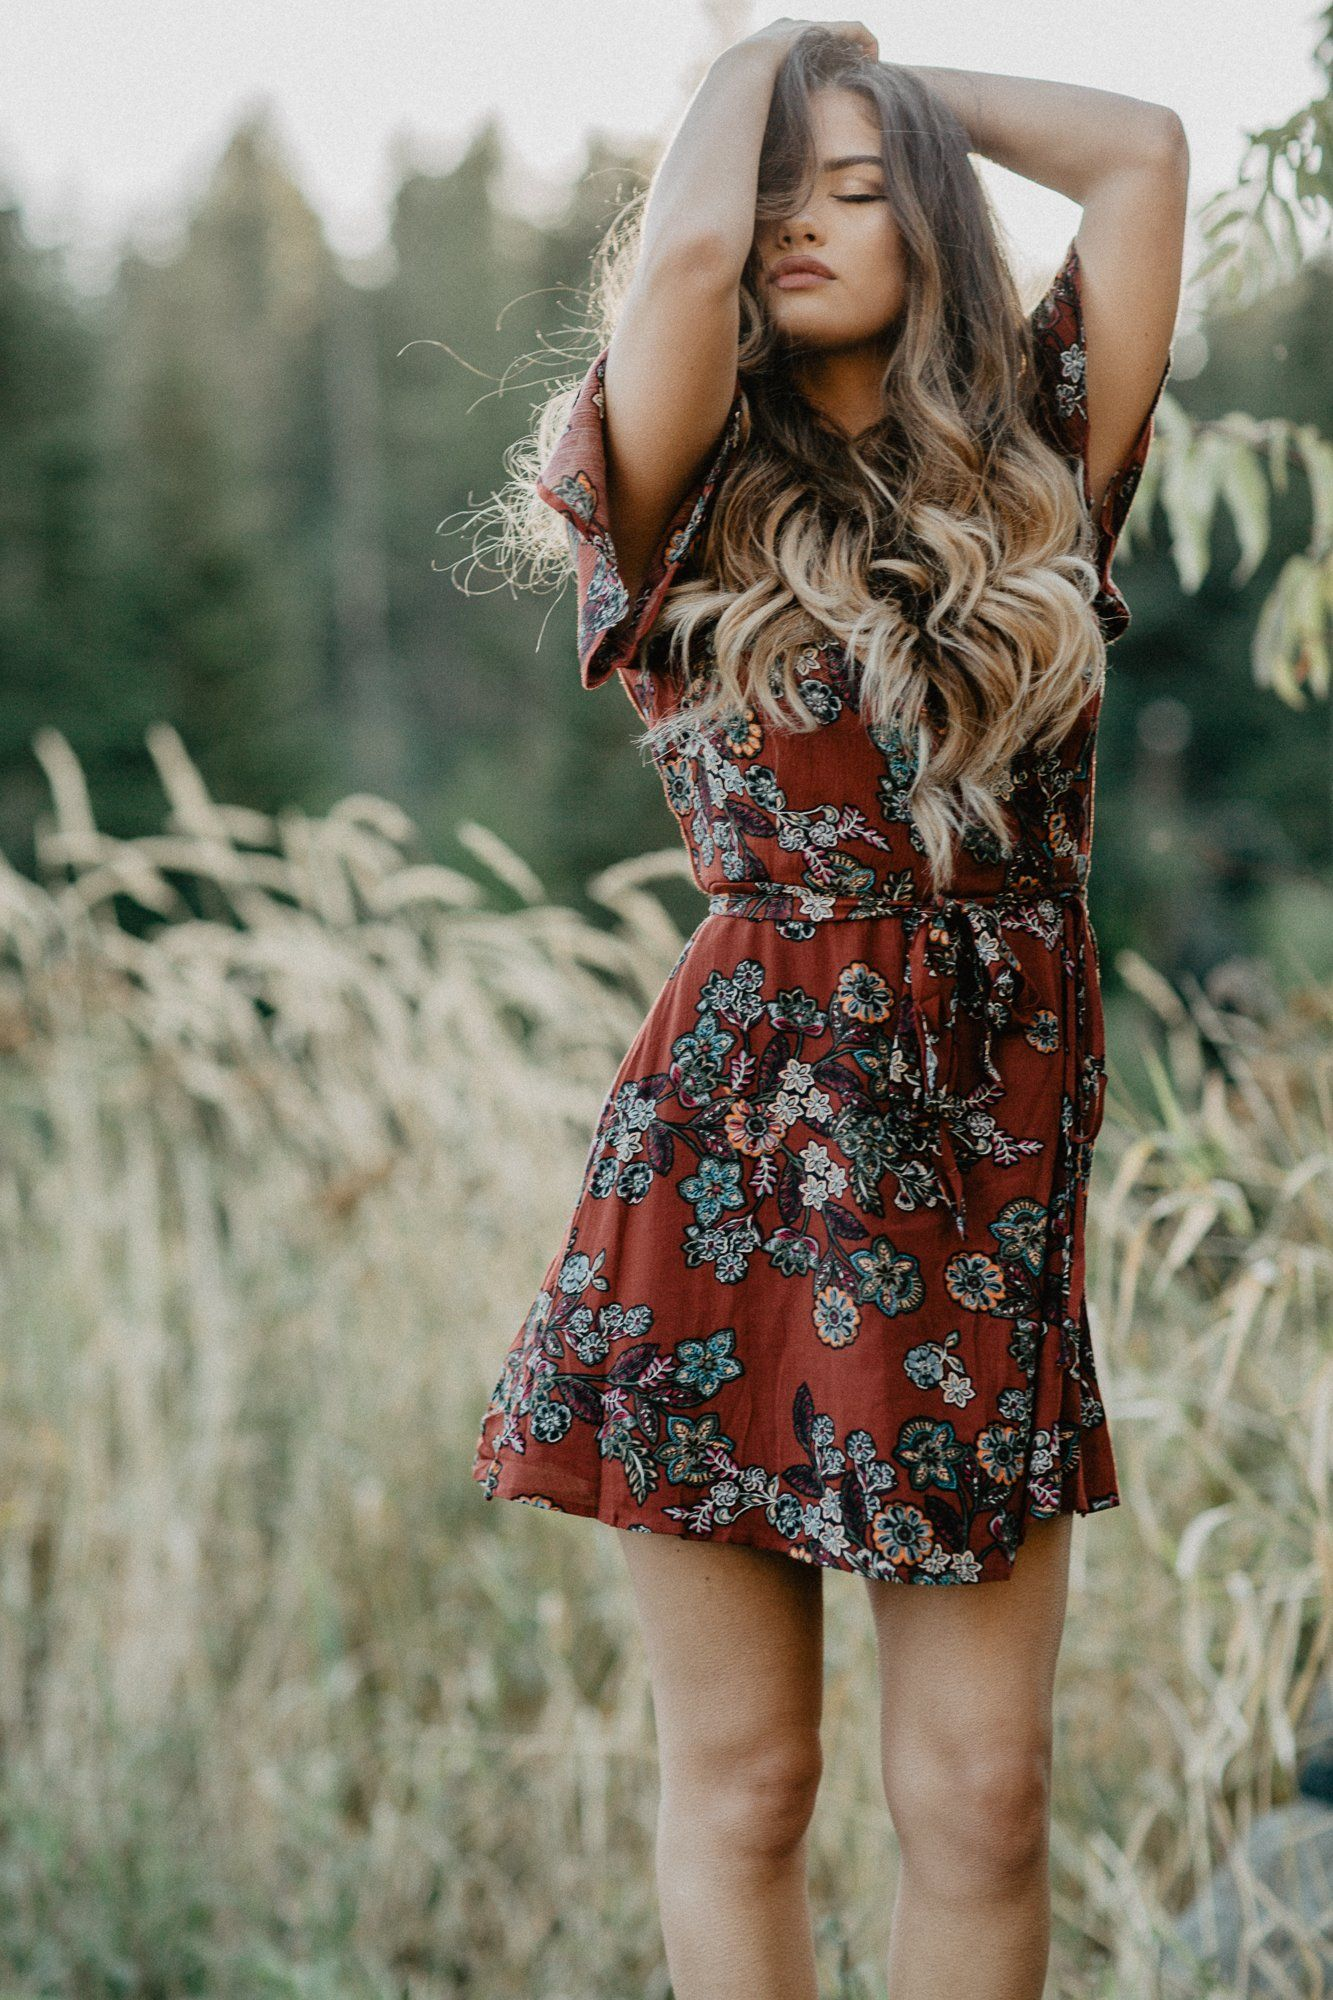 Red Floral Dress  PNW Style  Idaho  Rayla Kay Photography